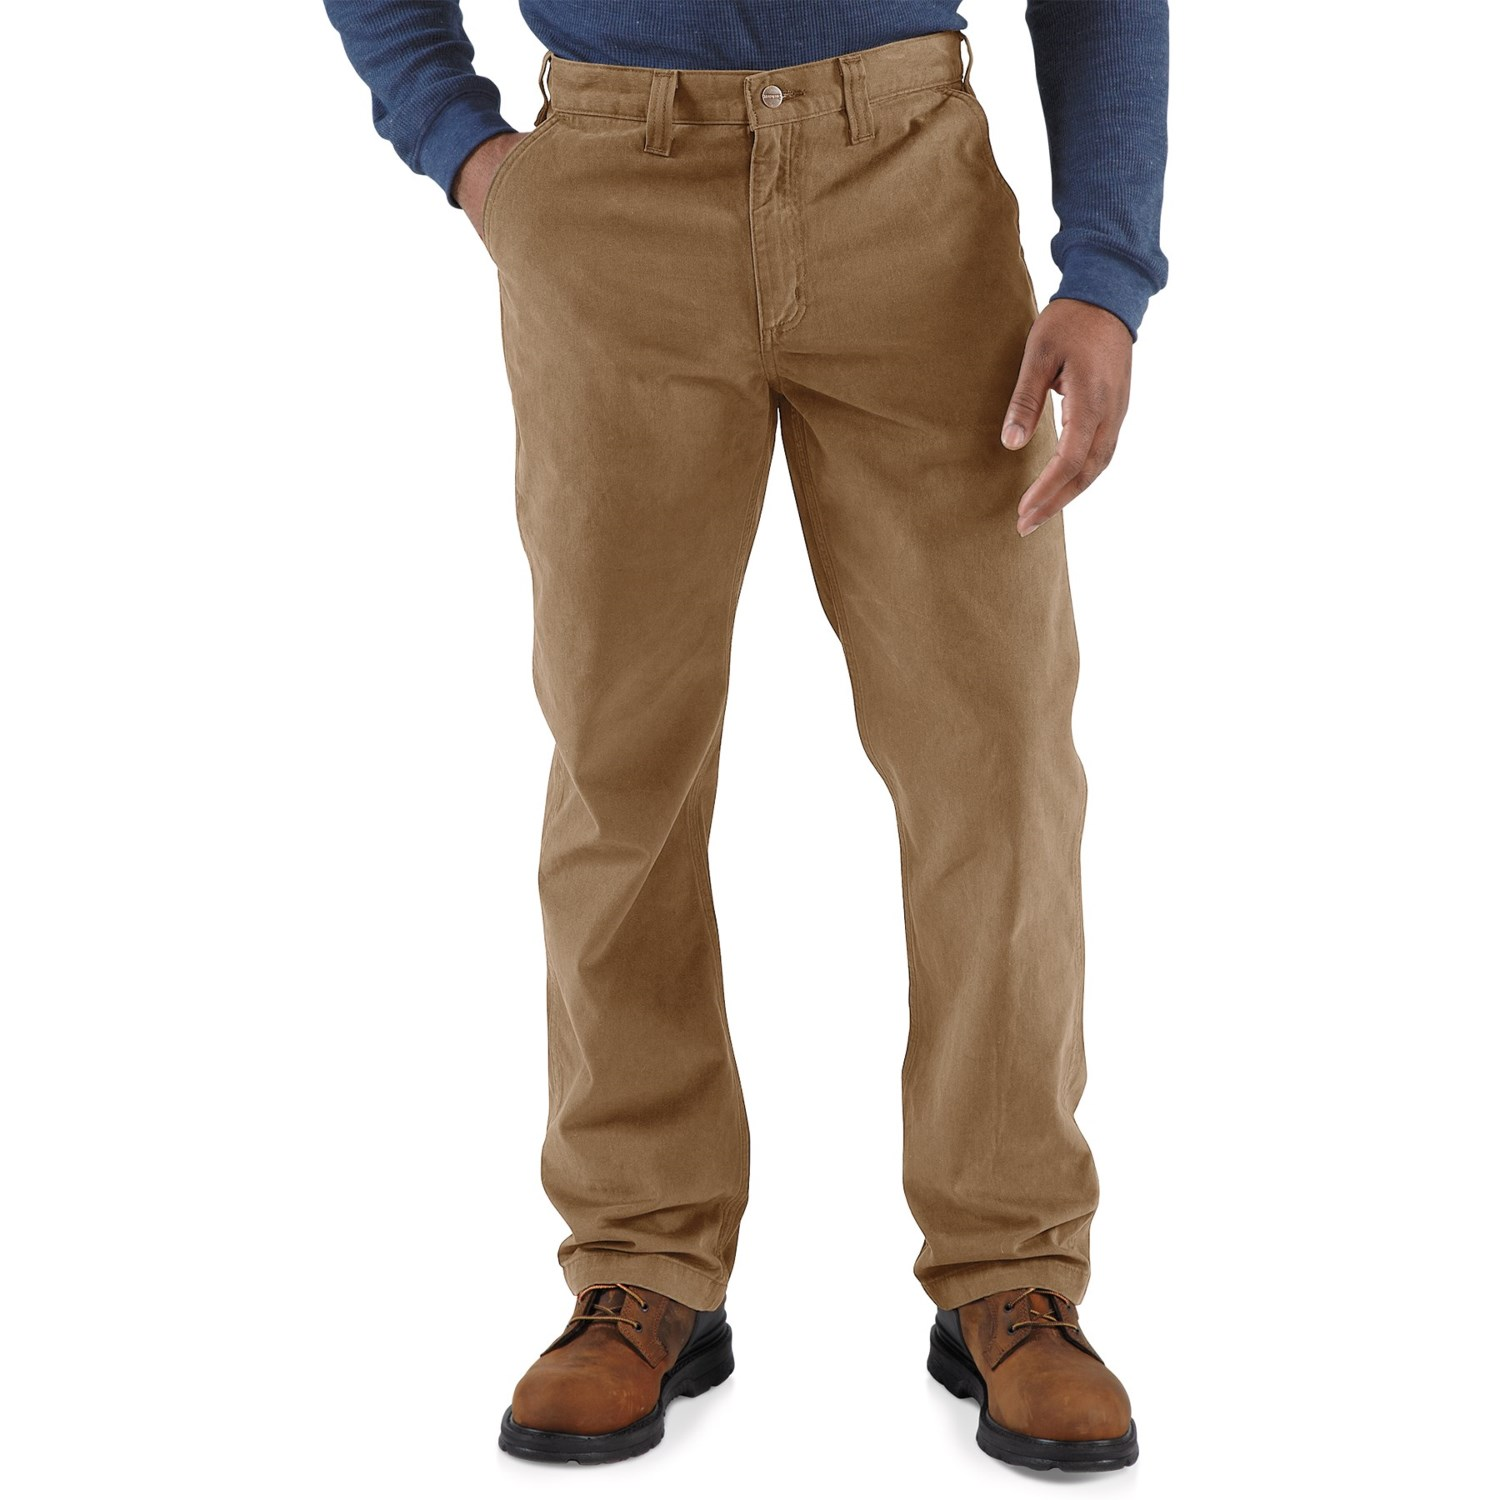 Shop eBay for great deals on Khakis, Chinos Unfinished Pants for Men. You'll find new or used products in Khakis, Chinos Unfinished Pants for Men on eBay. Free shipping on selected items.